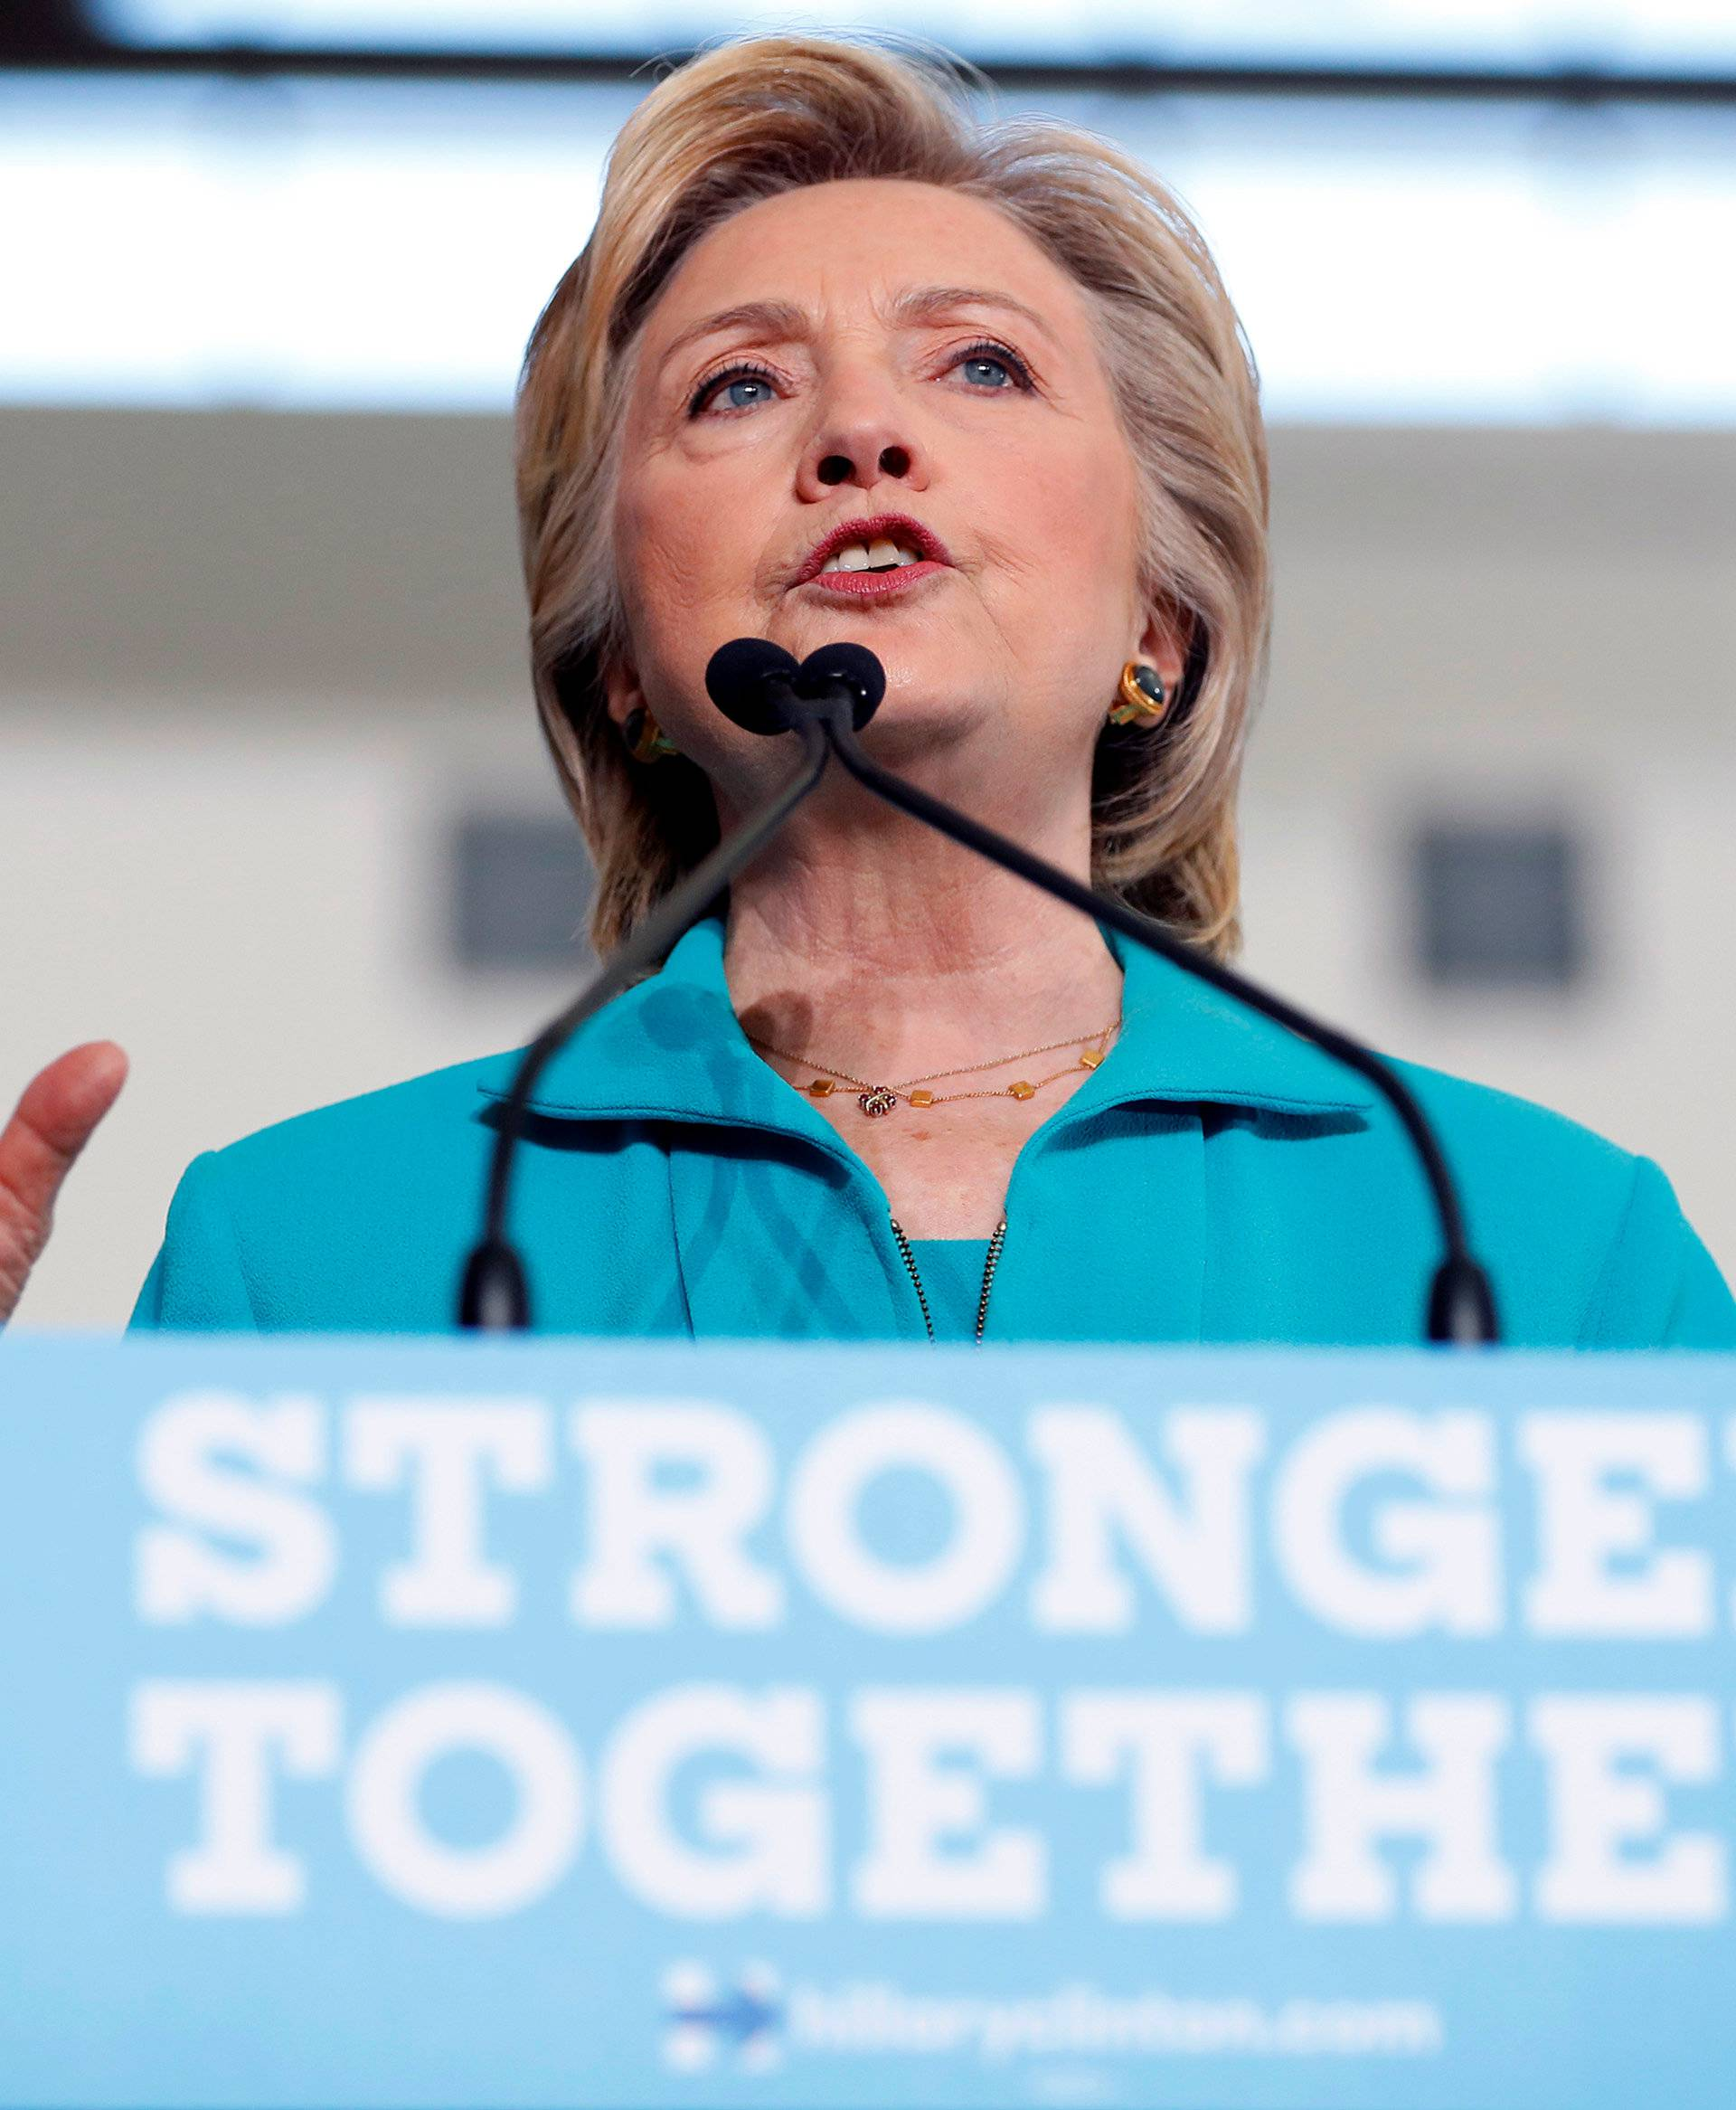 Democratic presidential nominee Hillary Clinton speaks at a rally at Truckee Meadows Community College in Reno